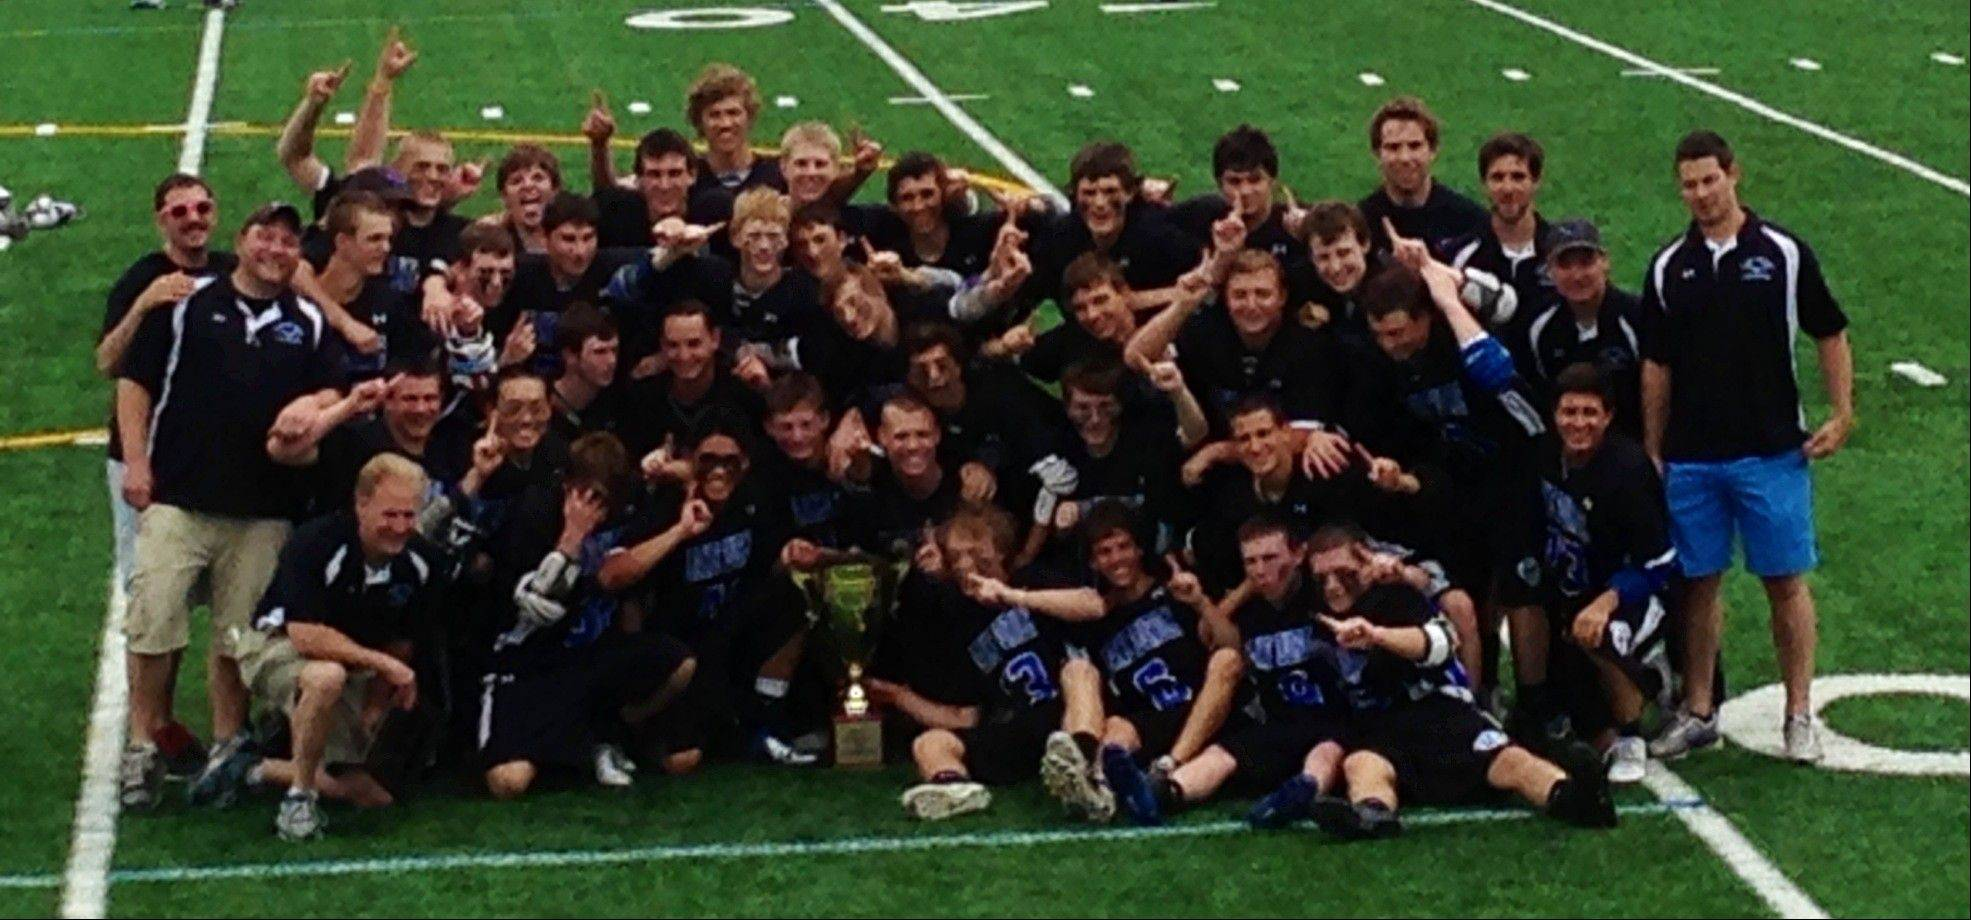 Lake Zurich's boys lacrosse team celebrates after beating Naperville Central 13-6 to capture the Lacrosse Cup at New Trier on Saturday.